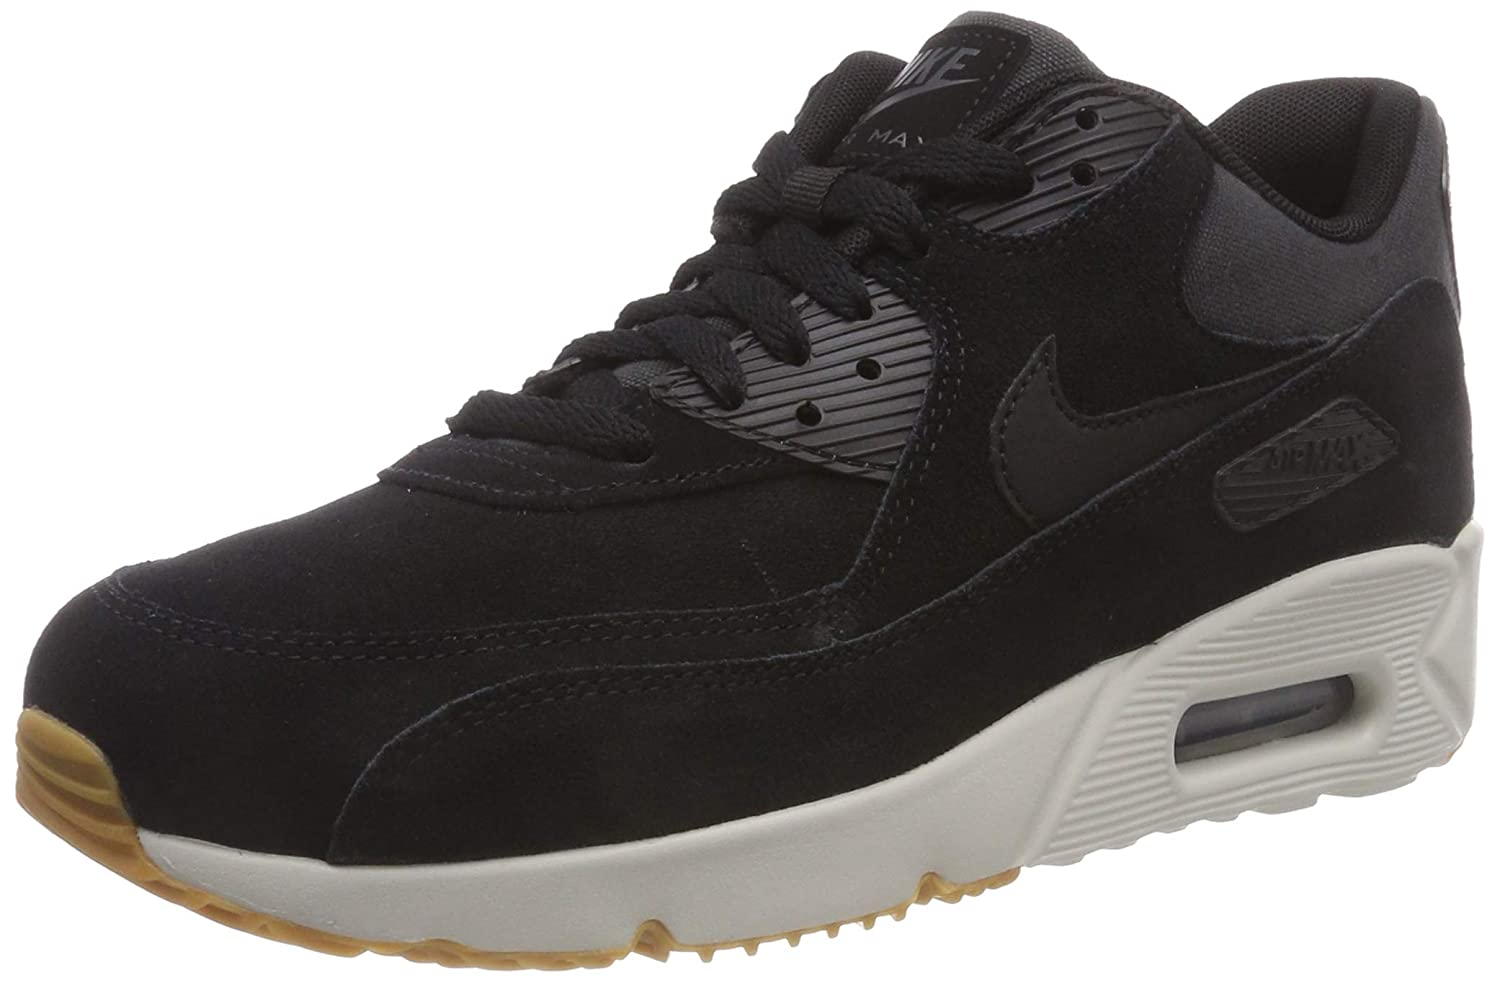 e5e65c11b0 Nike Men's Air Max 90 Ultra 2.0 LTR Gymnastics Shoes: Amazon.co.uk: Shoes &  Bags